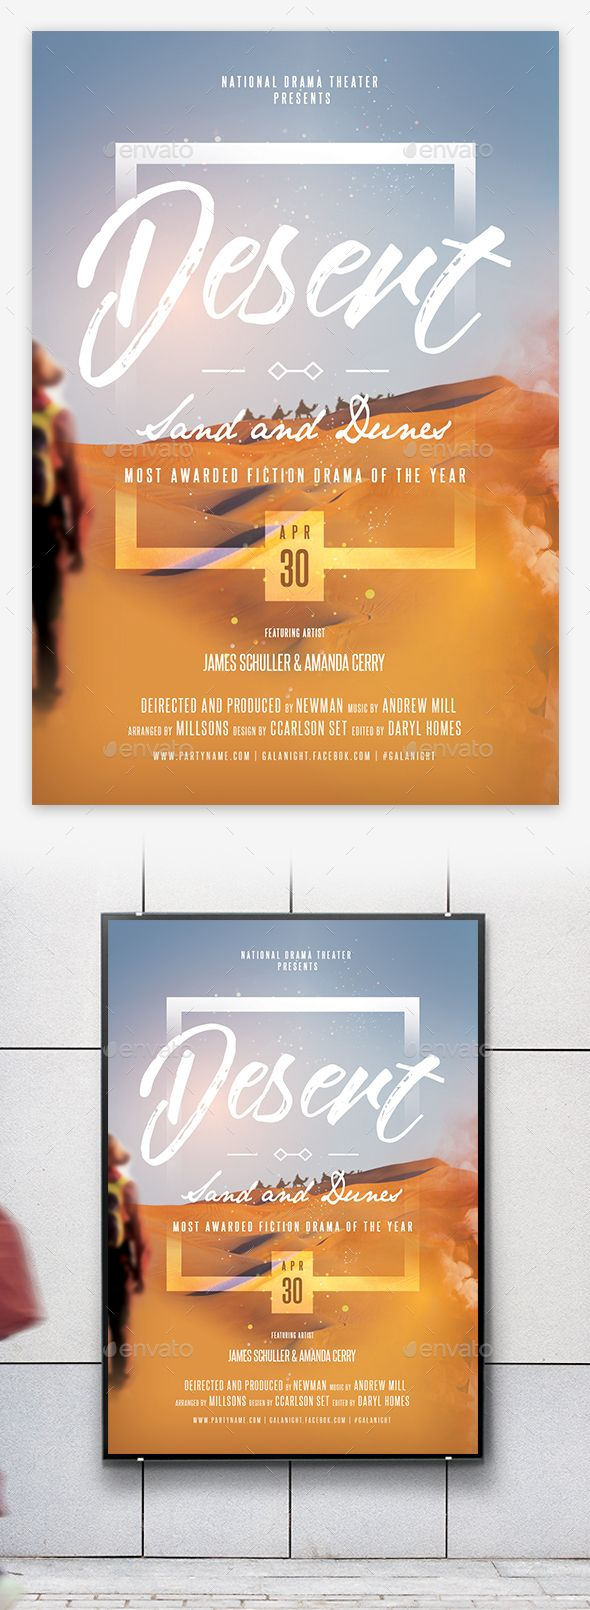 Theater Drama Promotion Flyer / Poster Template PSD